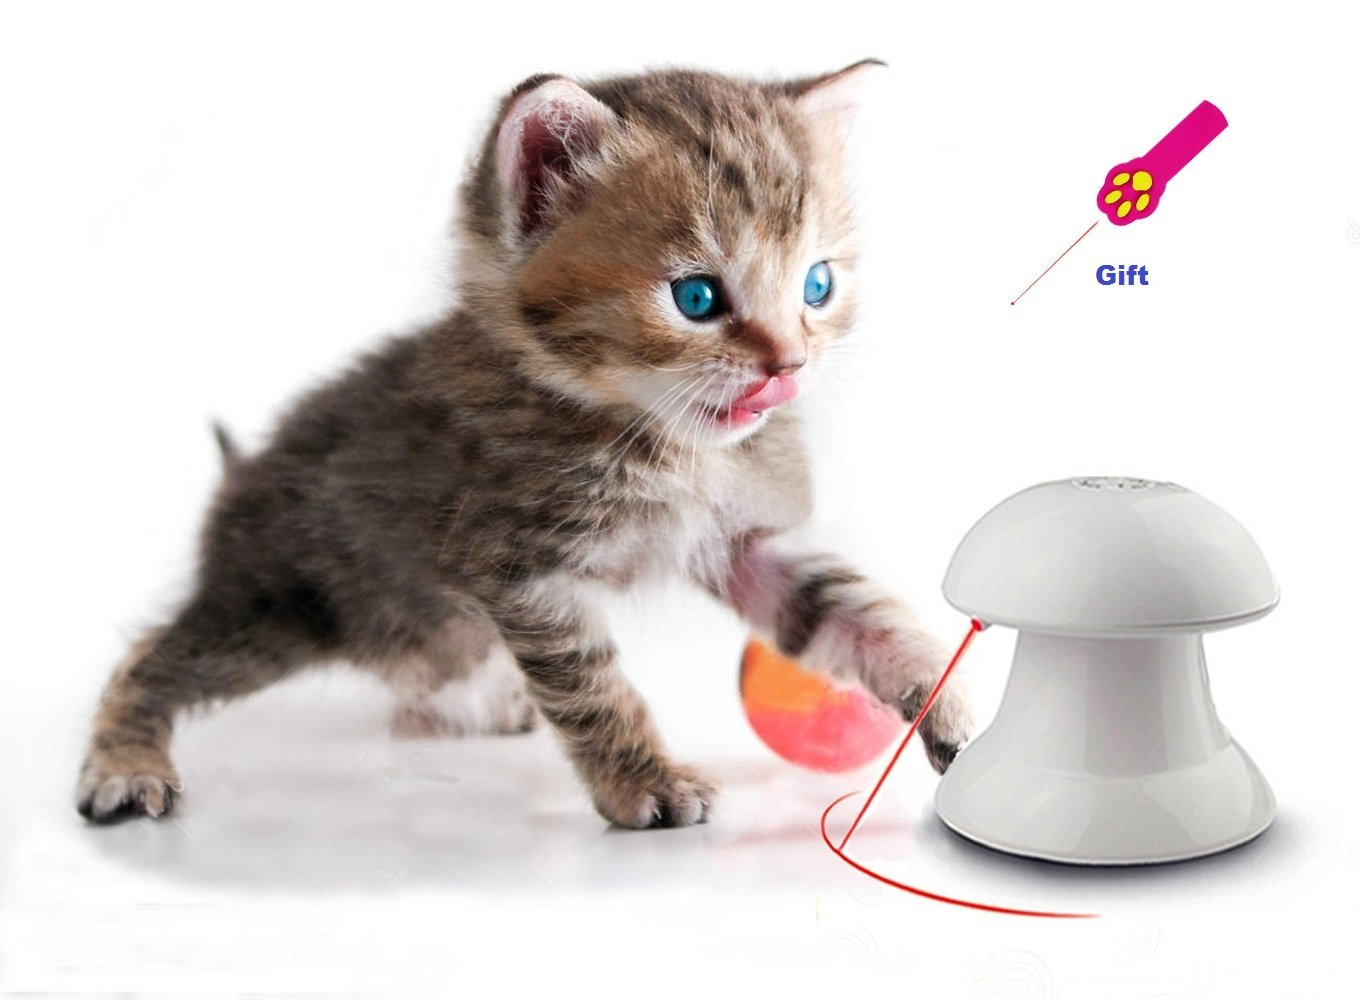 Pet Interactive Dart Laser toy Kitten Puppy Rotation Led Light Pointer Cat Dog Catch Scratching Chaser Exercise Entertainment Training Tool Automatic Rotating with Different Speeds